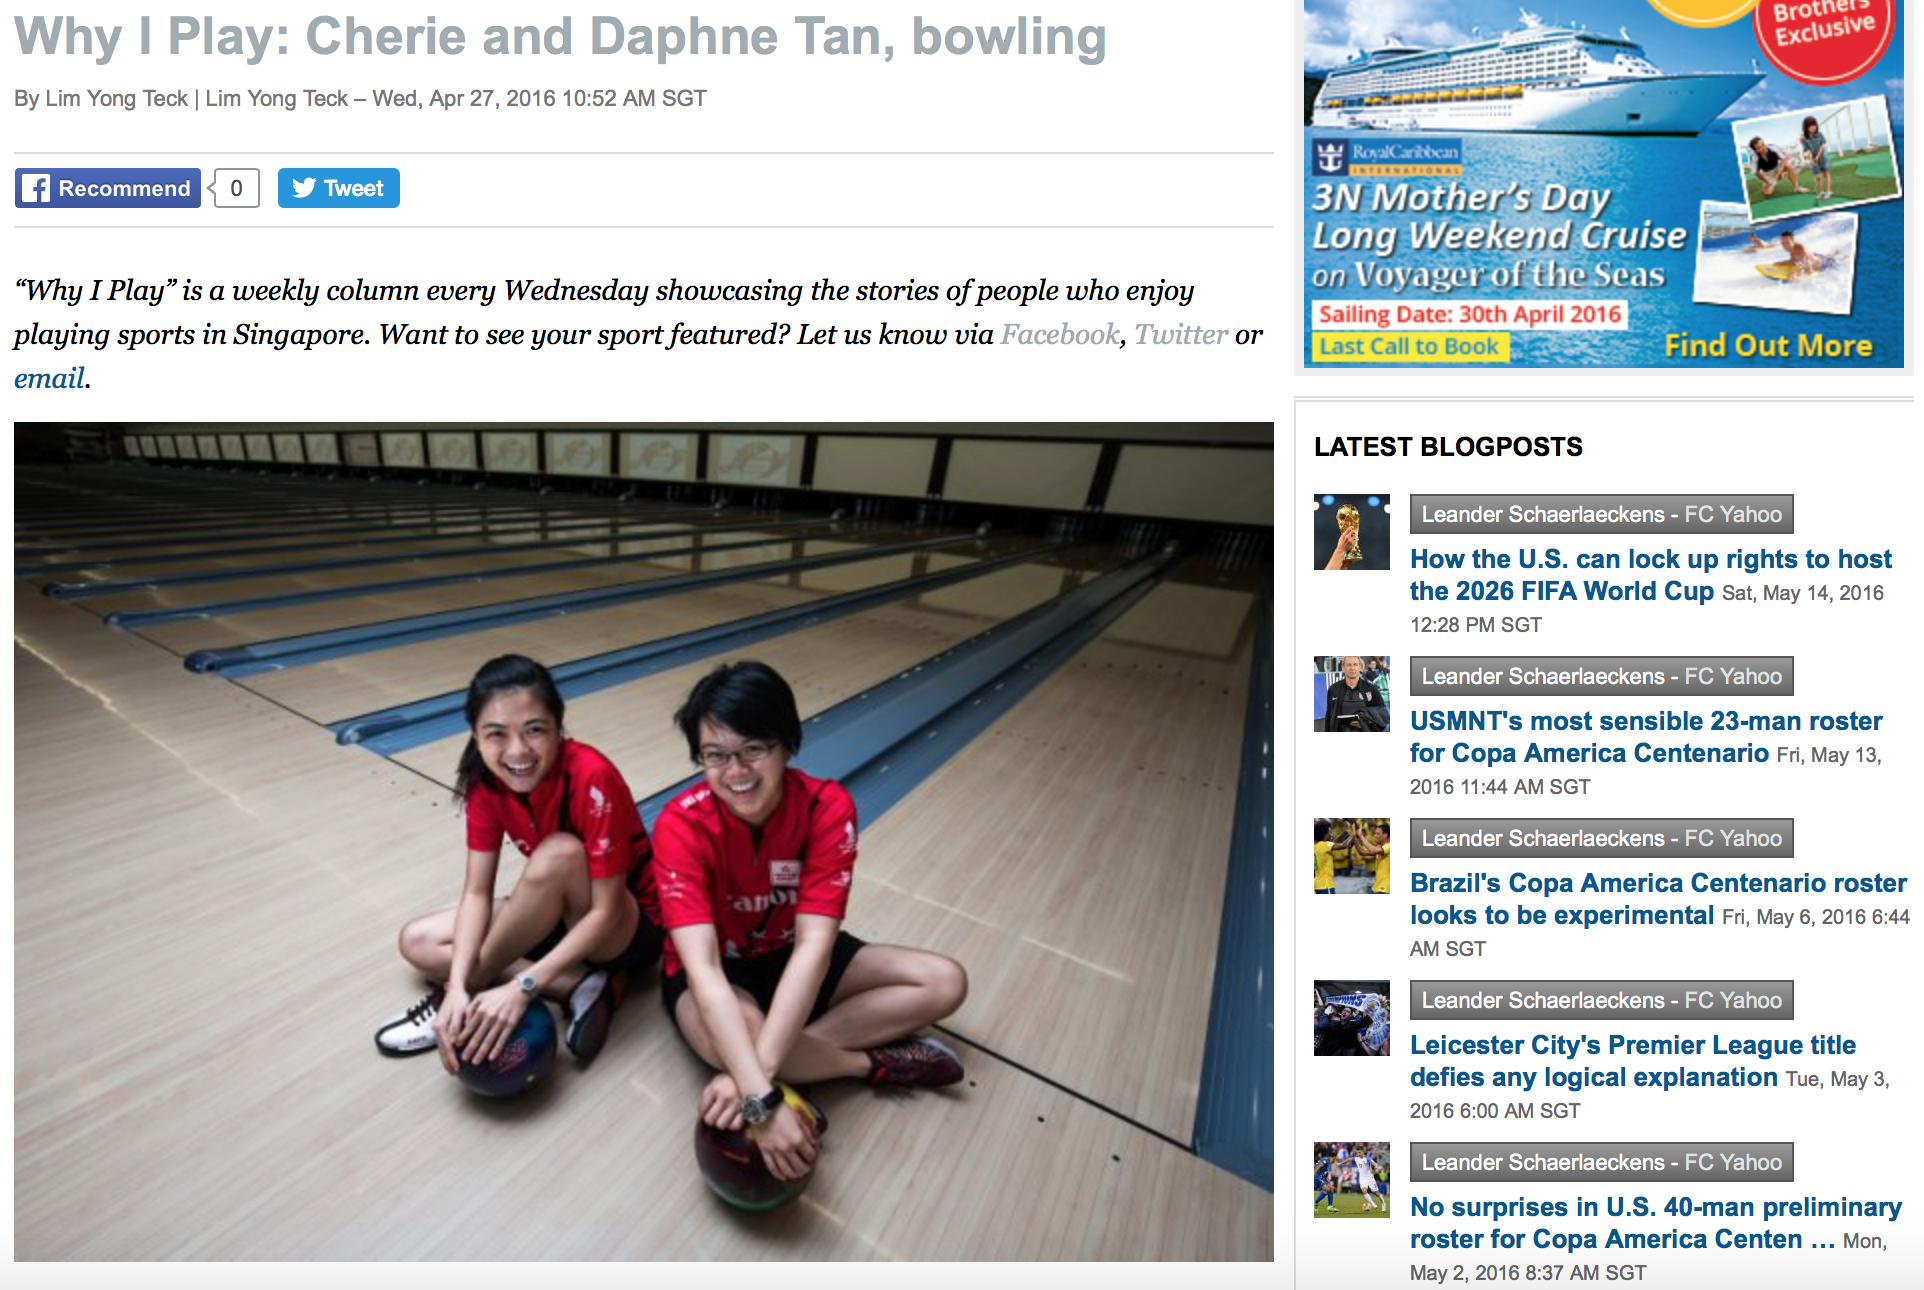 Cherie & Daphne Tan bowling feature for Yahoo!(www.yahoo.com)